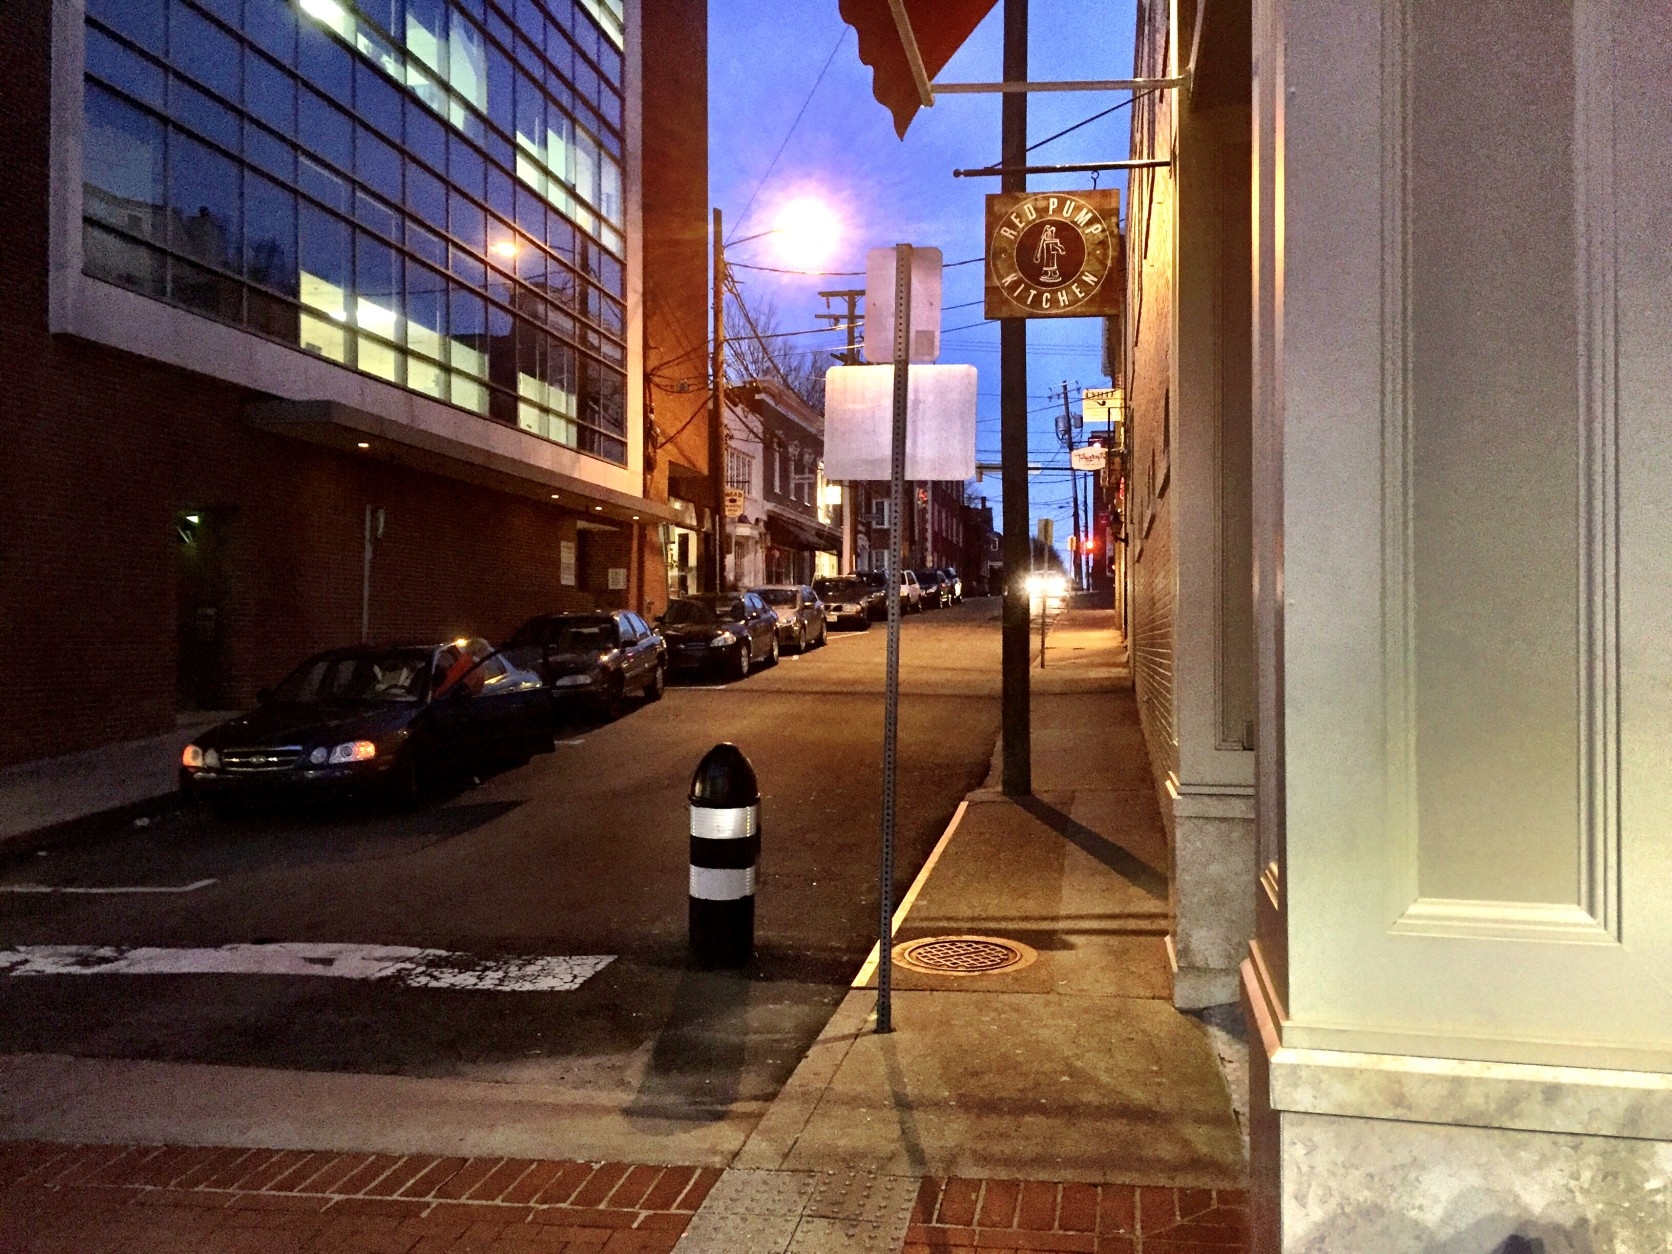 At 1:18 a.m., after leaving Tempo, Hannah Graham and Jesse Matthew walked north on 4th Street, captured by surveillance video at Red Pump Kitchen, 401 E. Main Street. As they left the view of the video camera, Matthew paused for about 10 seconds, as indicated by his shadow. It's unclear whether Graham also stopped. (WTOP/Neal Augenstein)